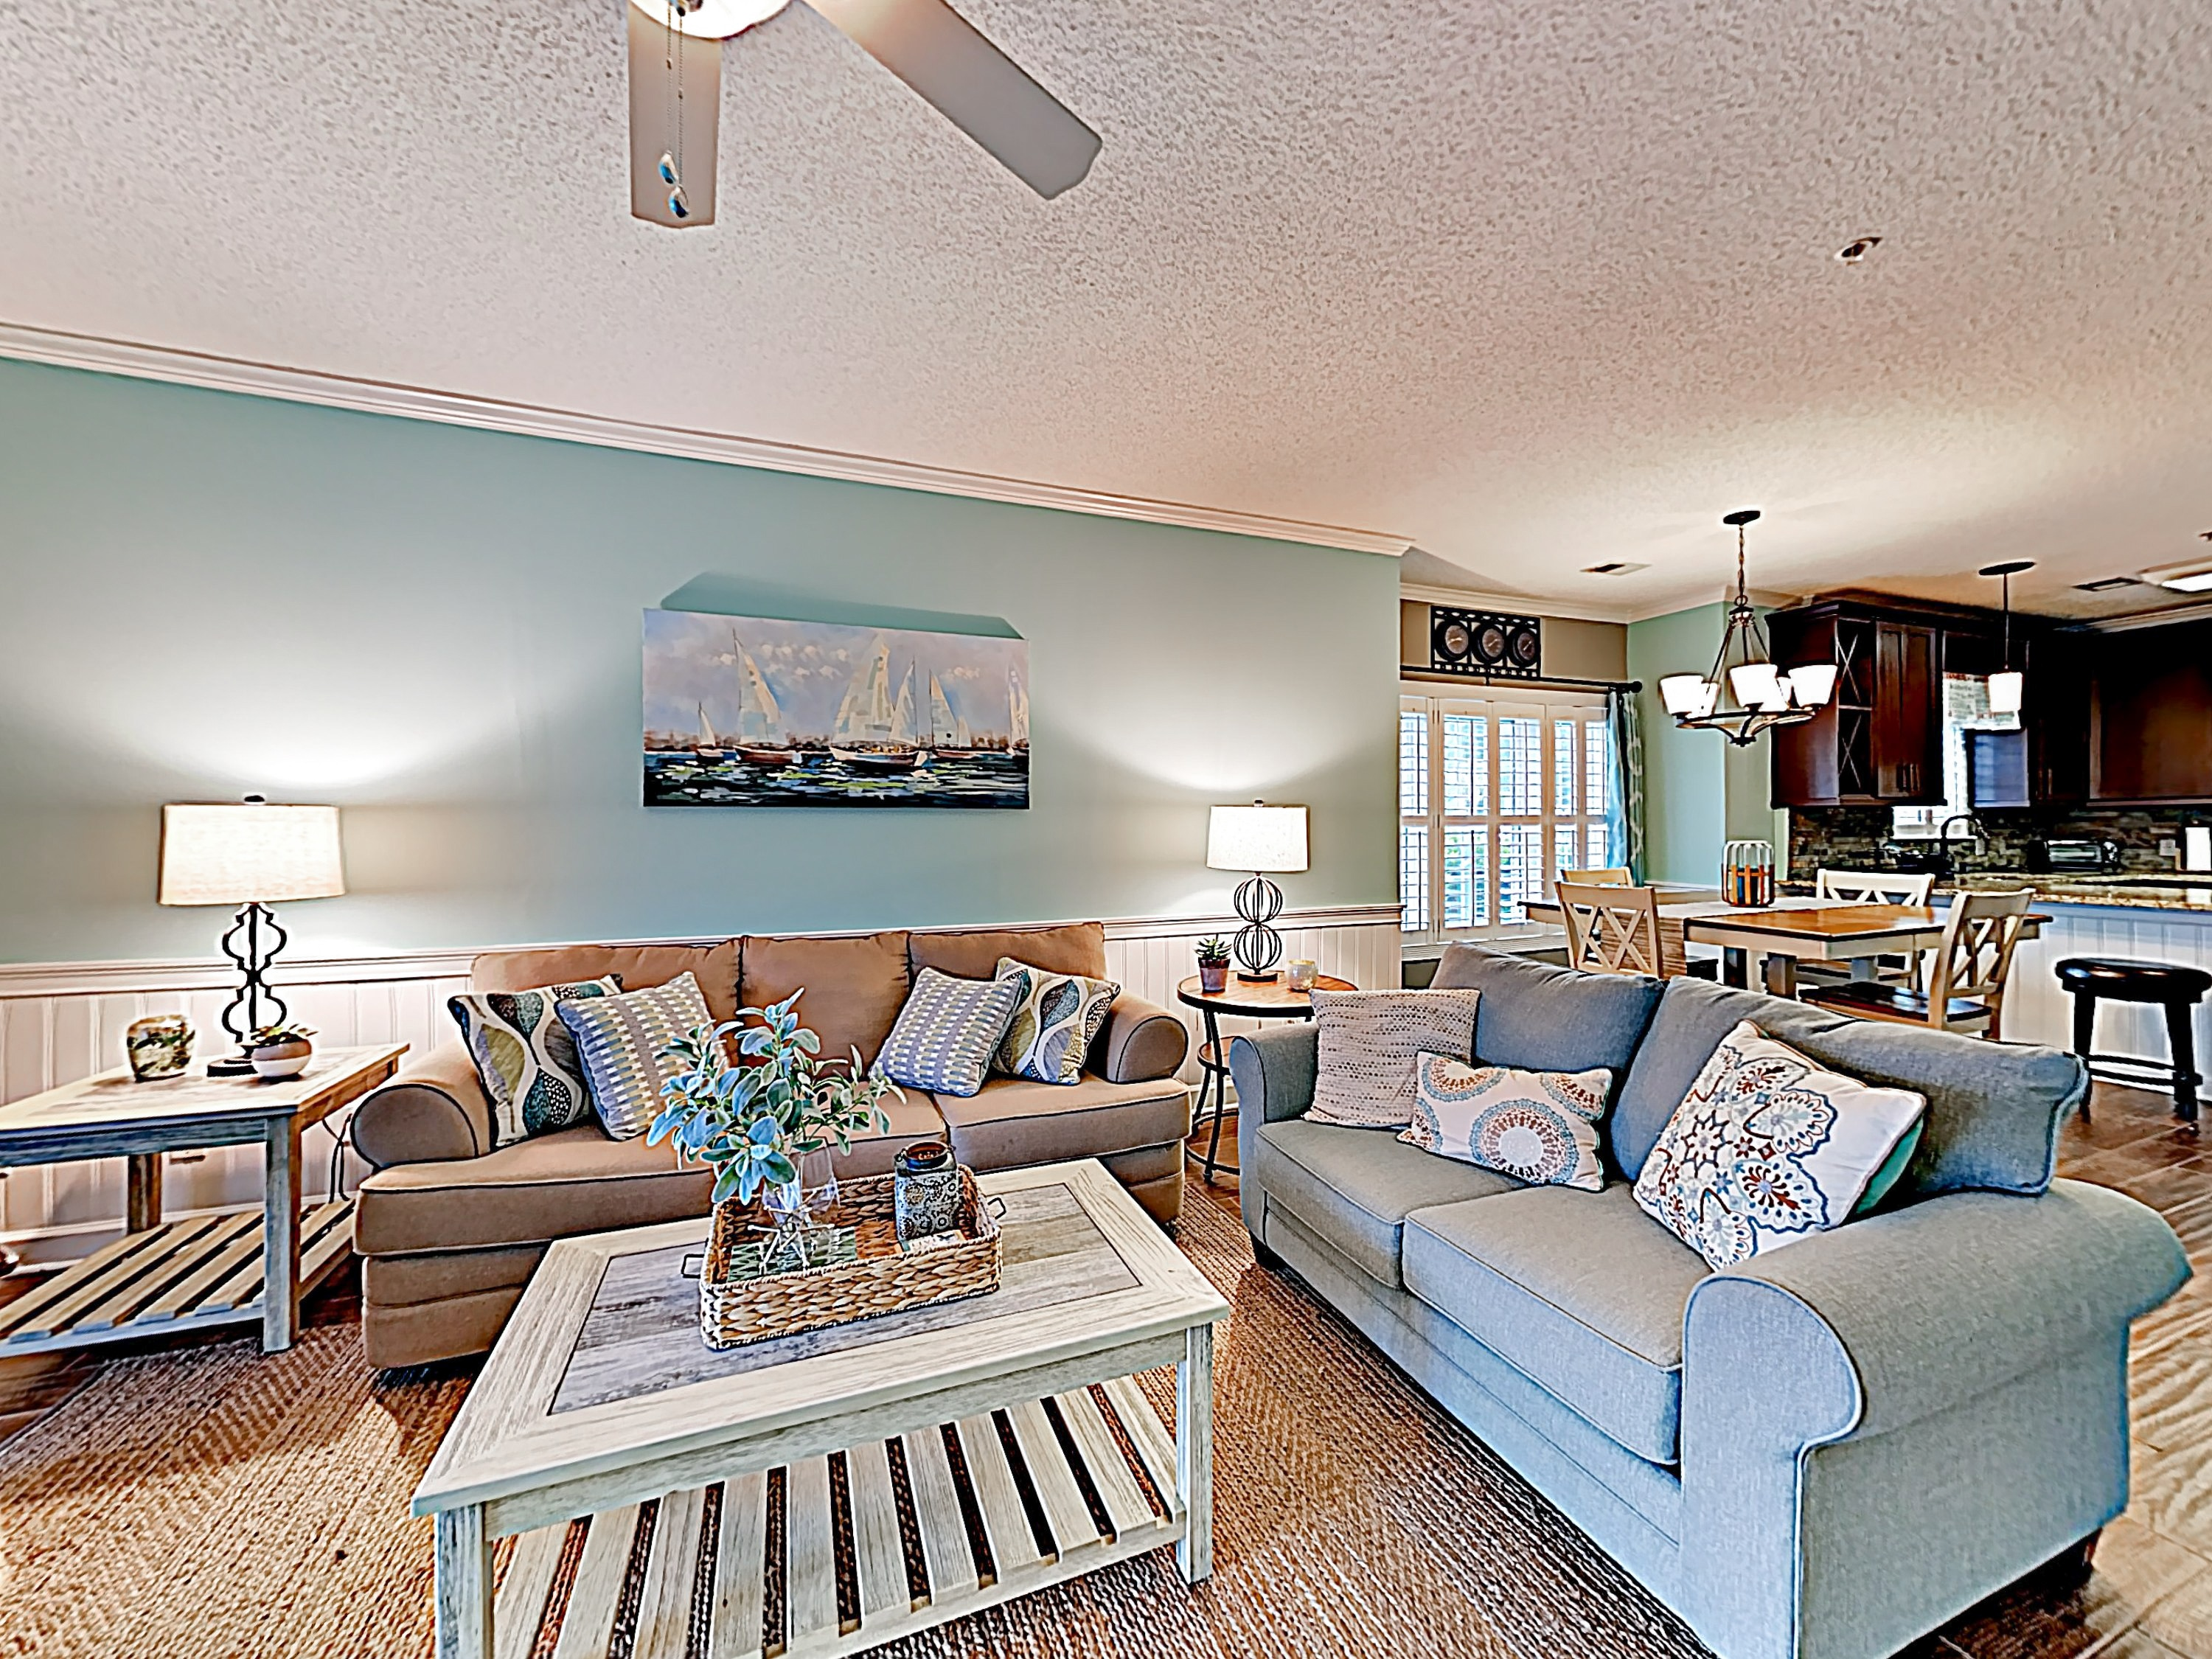 Welcome to Myrtle Beach! This condo is professionally managed by TurnKey Vacation Rentals.